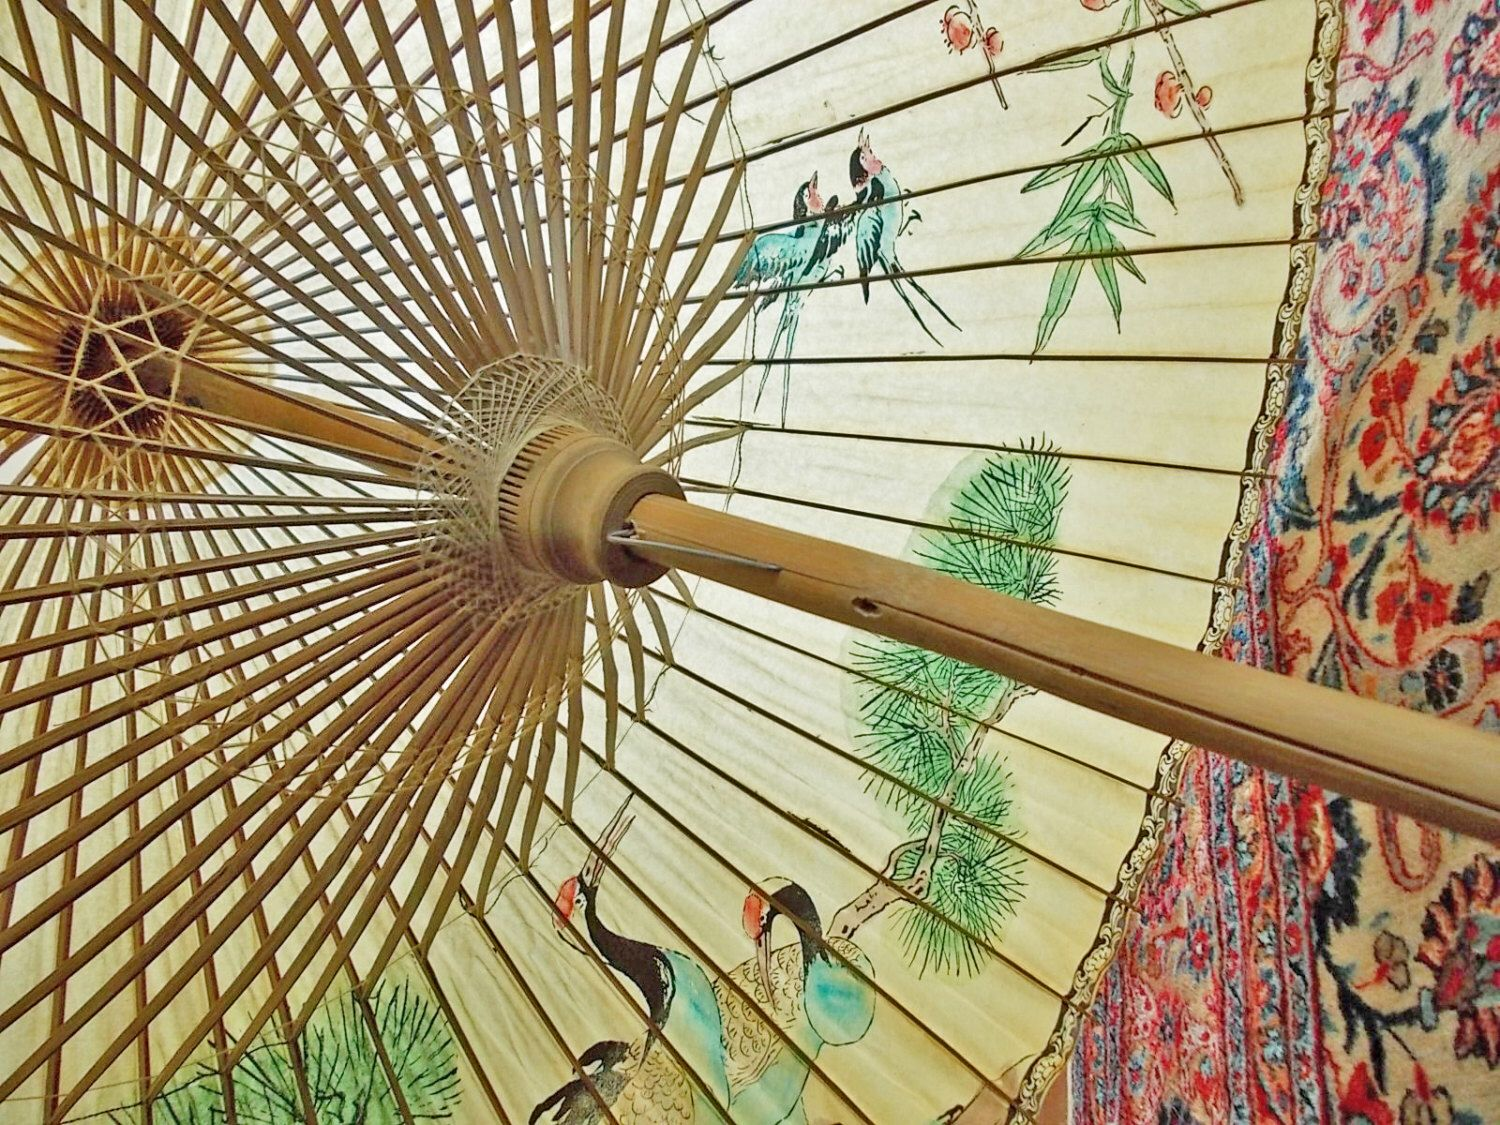 HUGE Vintage Paper Parasol, Extra Large Chinese Parasol, Chinoiserie Decor,  Chinese Umbrella,